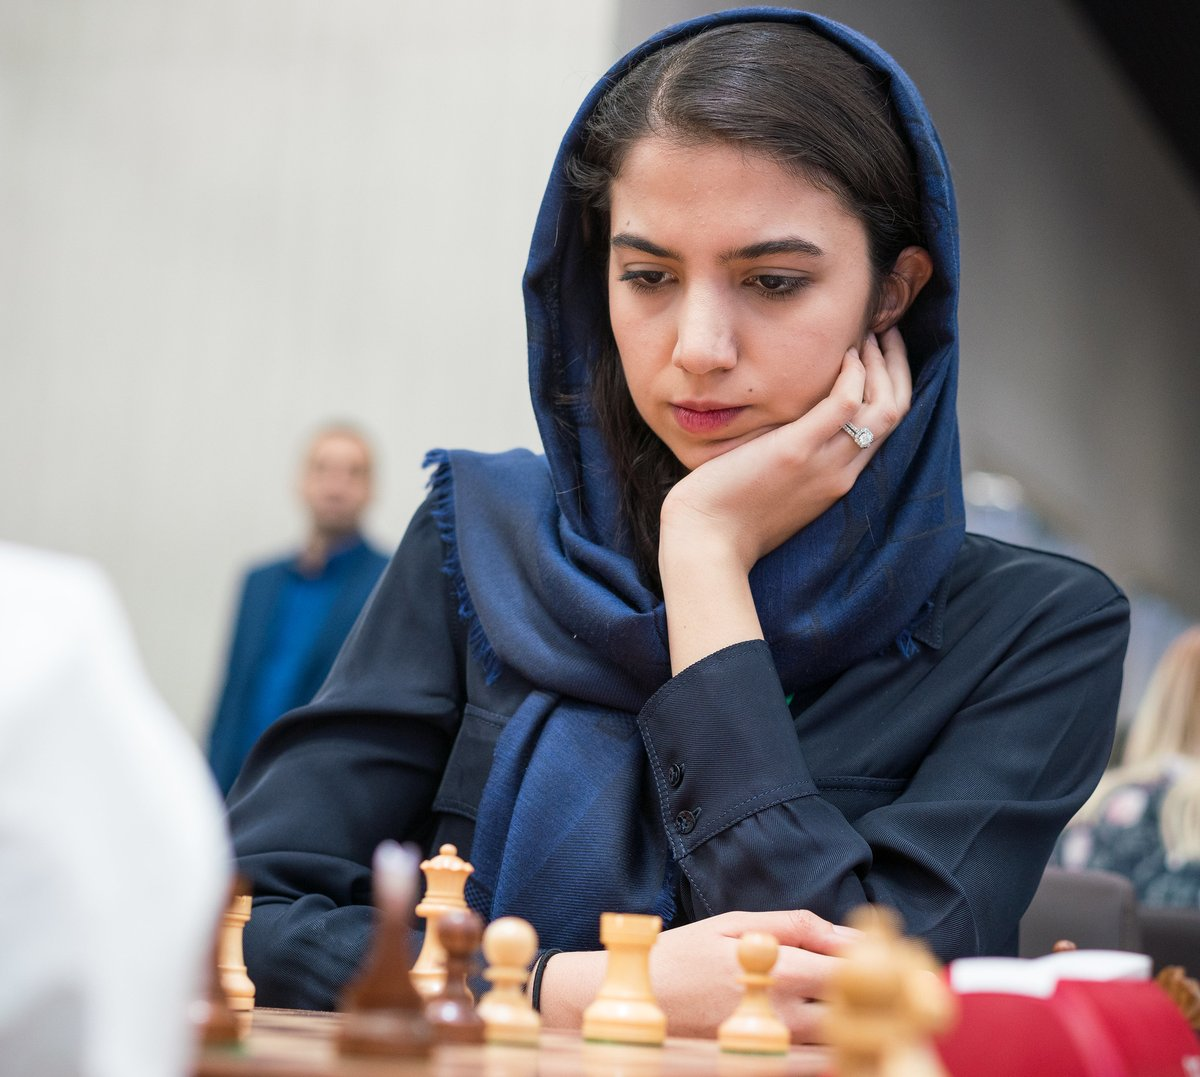 test Twitter Media - Sarasadat Khademalsharieh defeats women's world champion Ju Wenjun 7-5 and advances to the semis of Leg 3 of the Women's #SpeedChess GP.   The Iranian player had a one-point lead going into the bullet portion where she won two more games to seal the deal.   #WomenInChess #chess https://t.co/l7xqsJgc4S